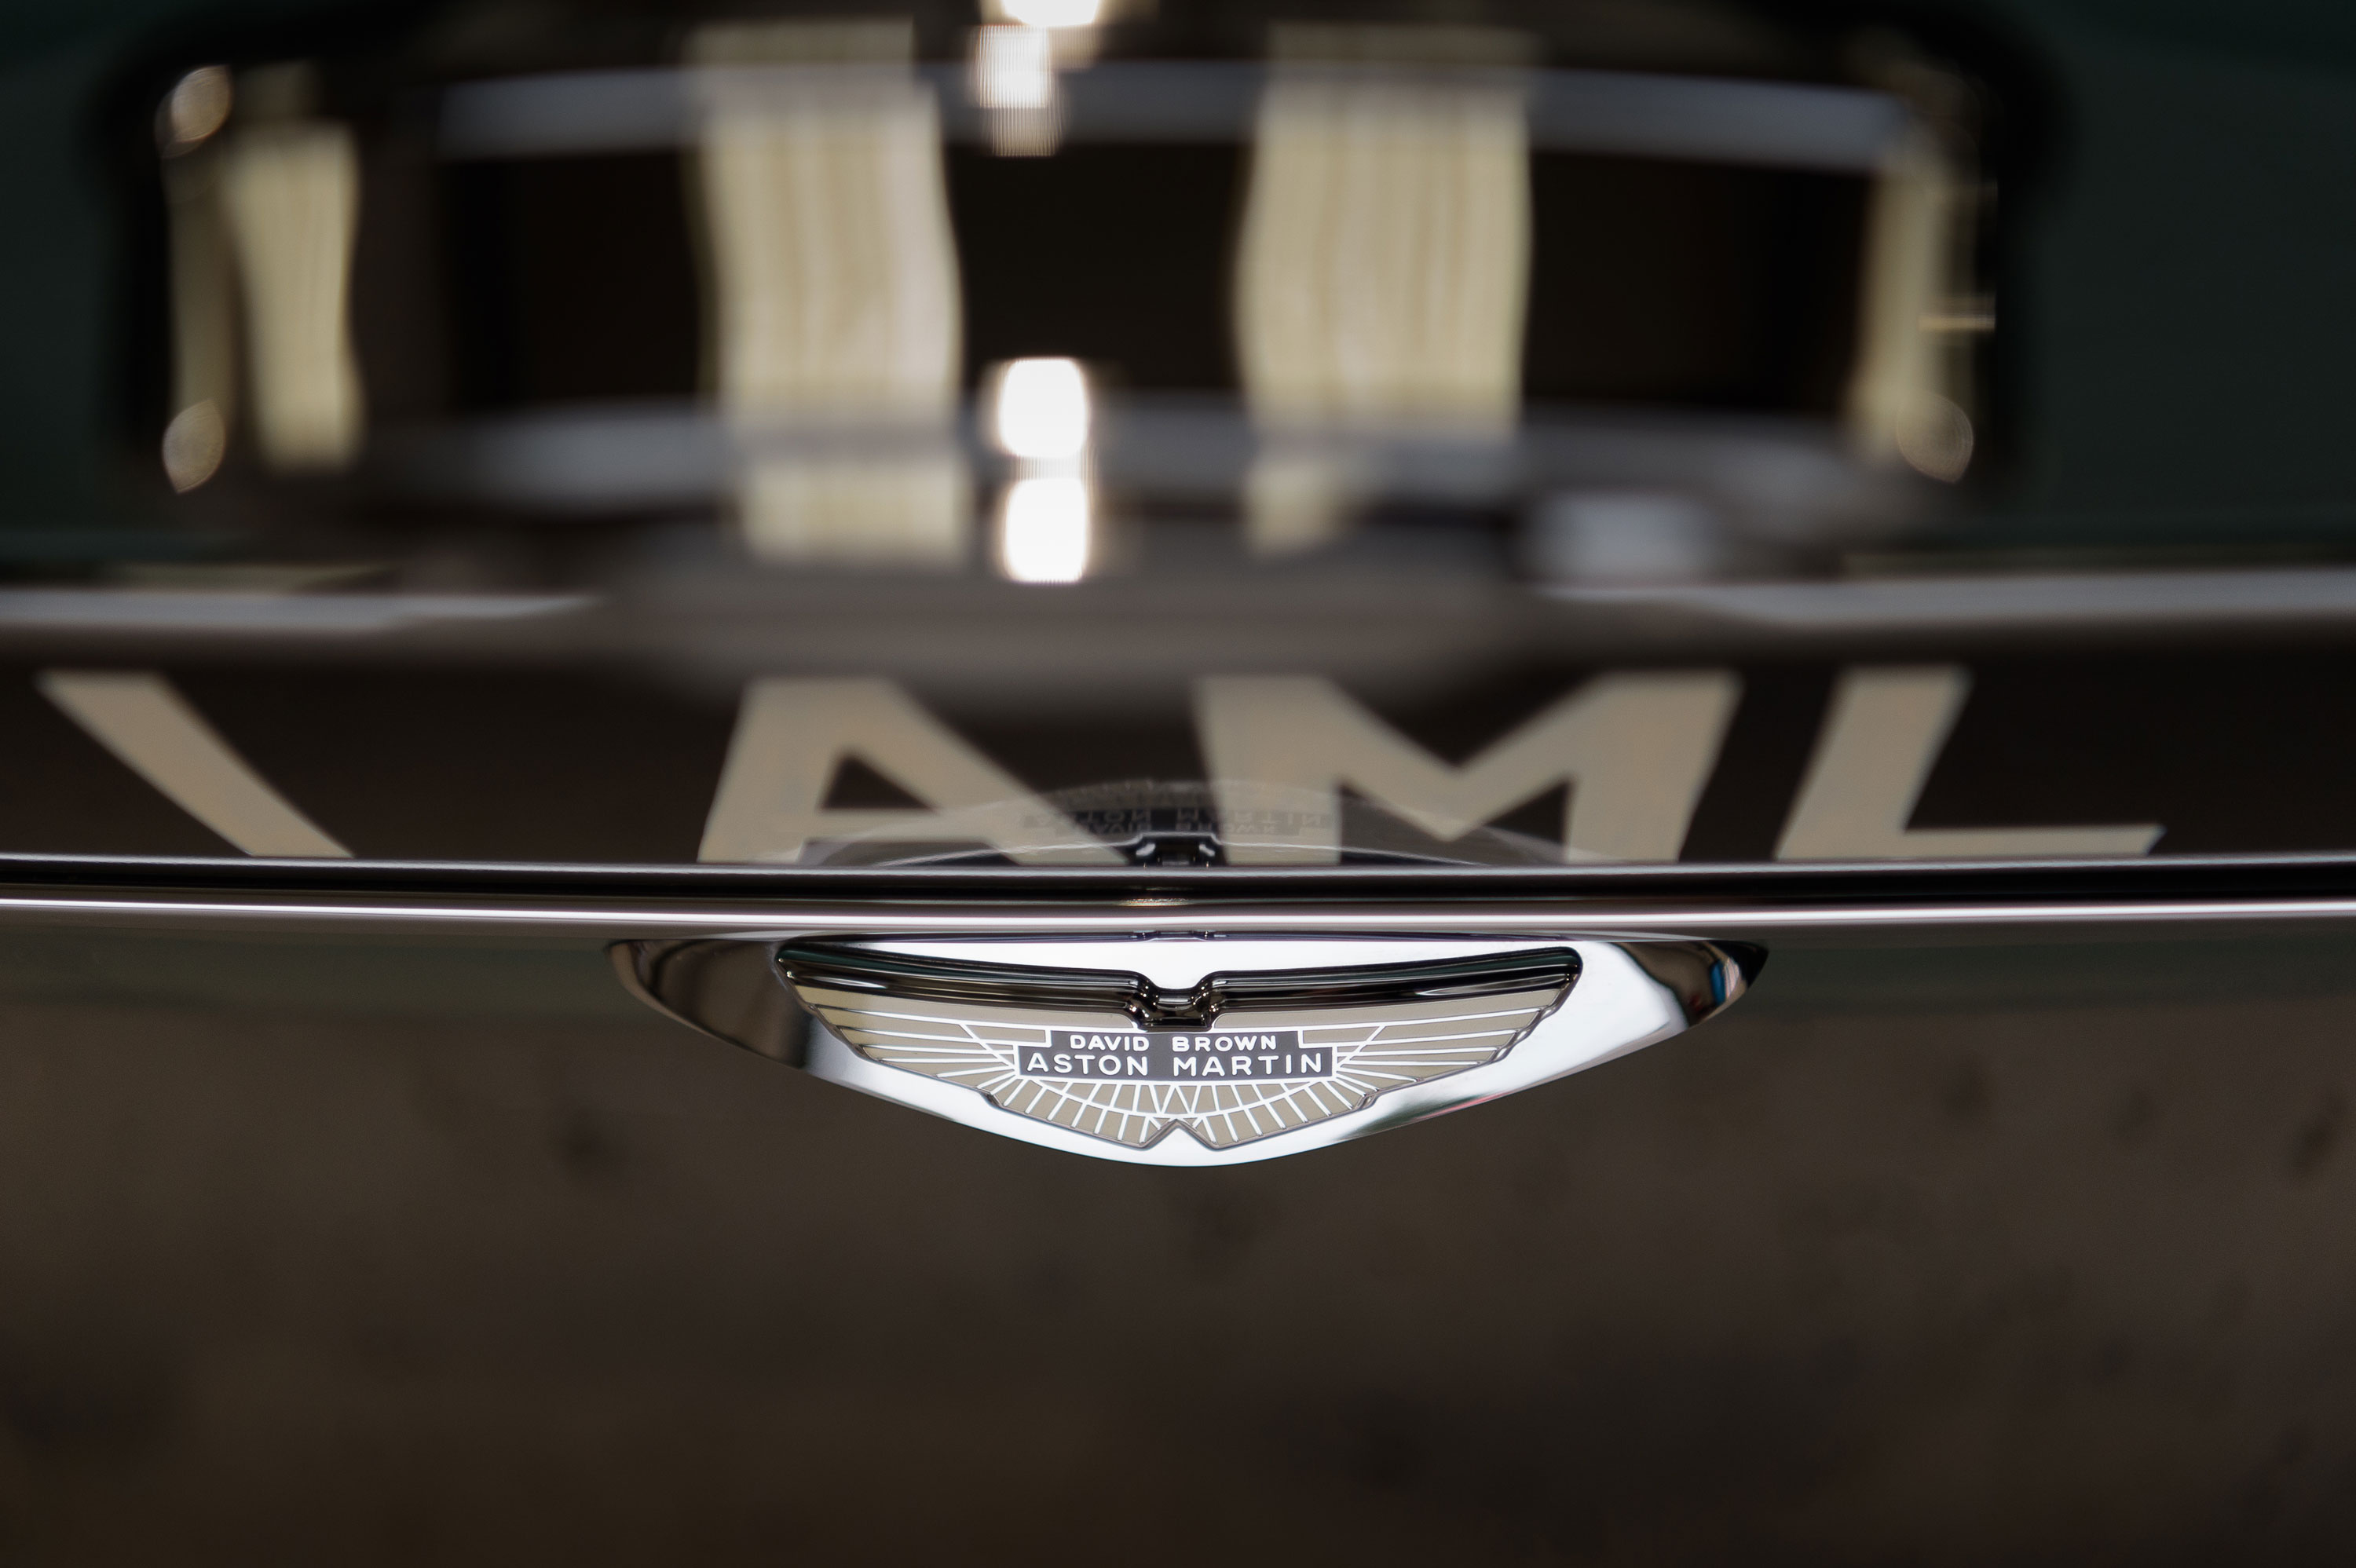 1959 Aston Martin DB4 GT David Brown Aston Martin badge